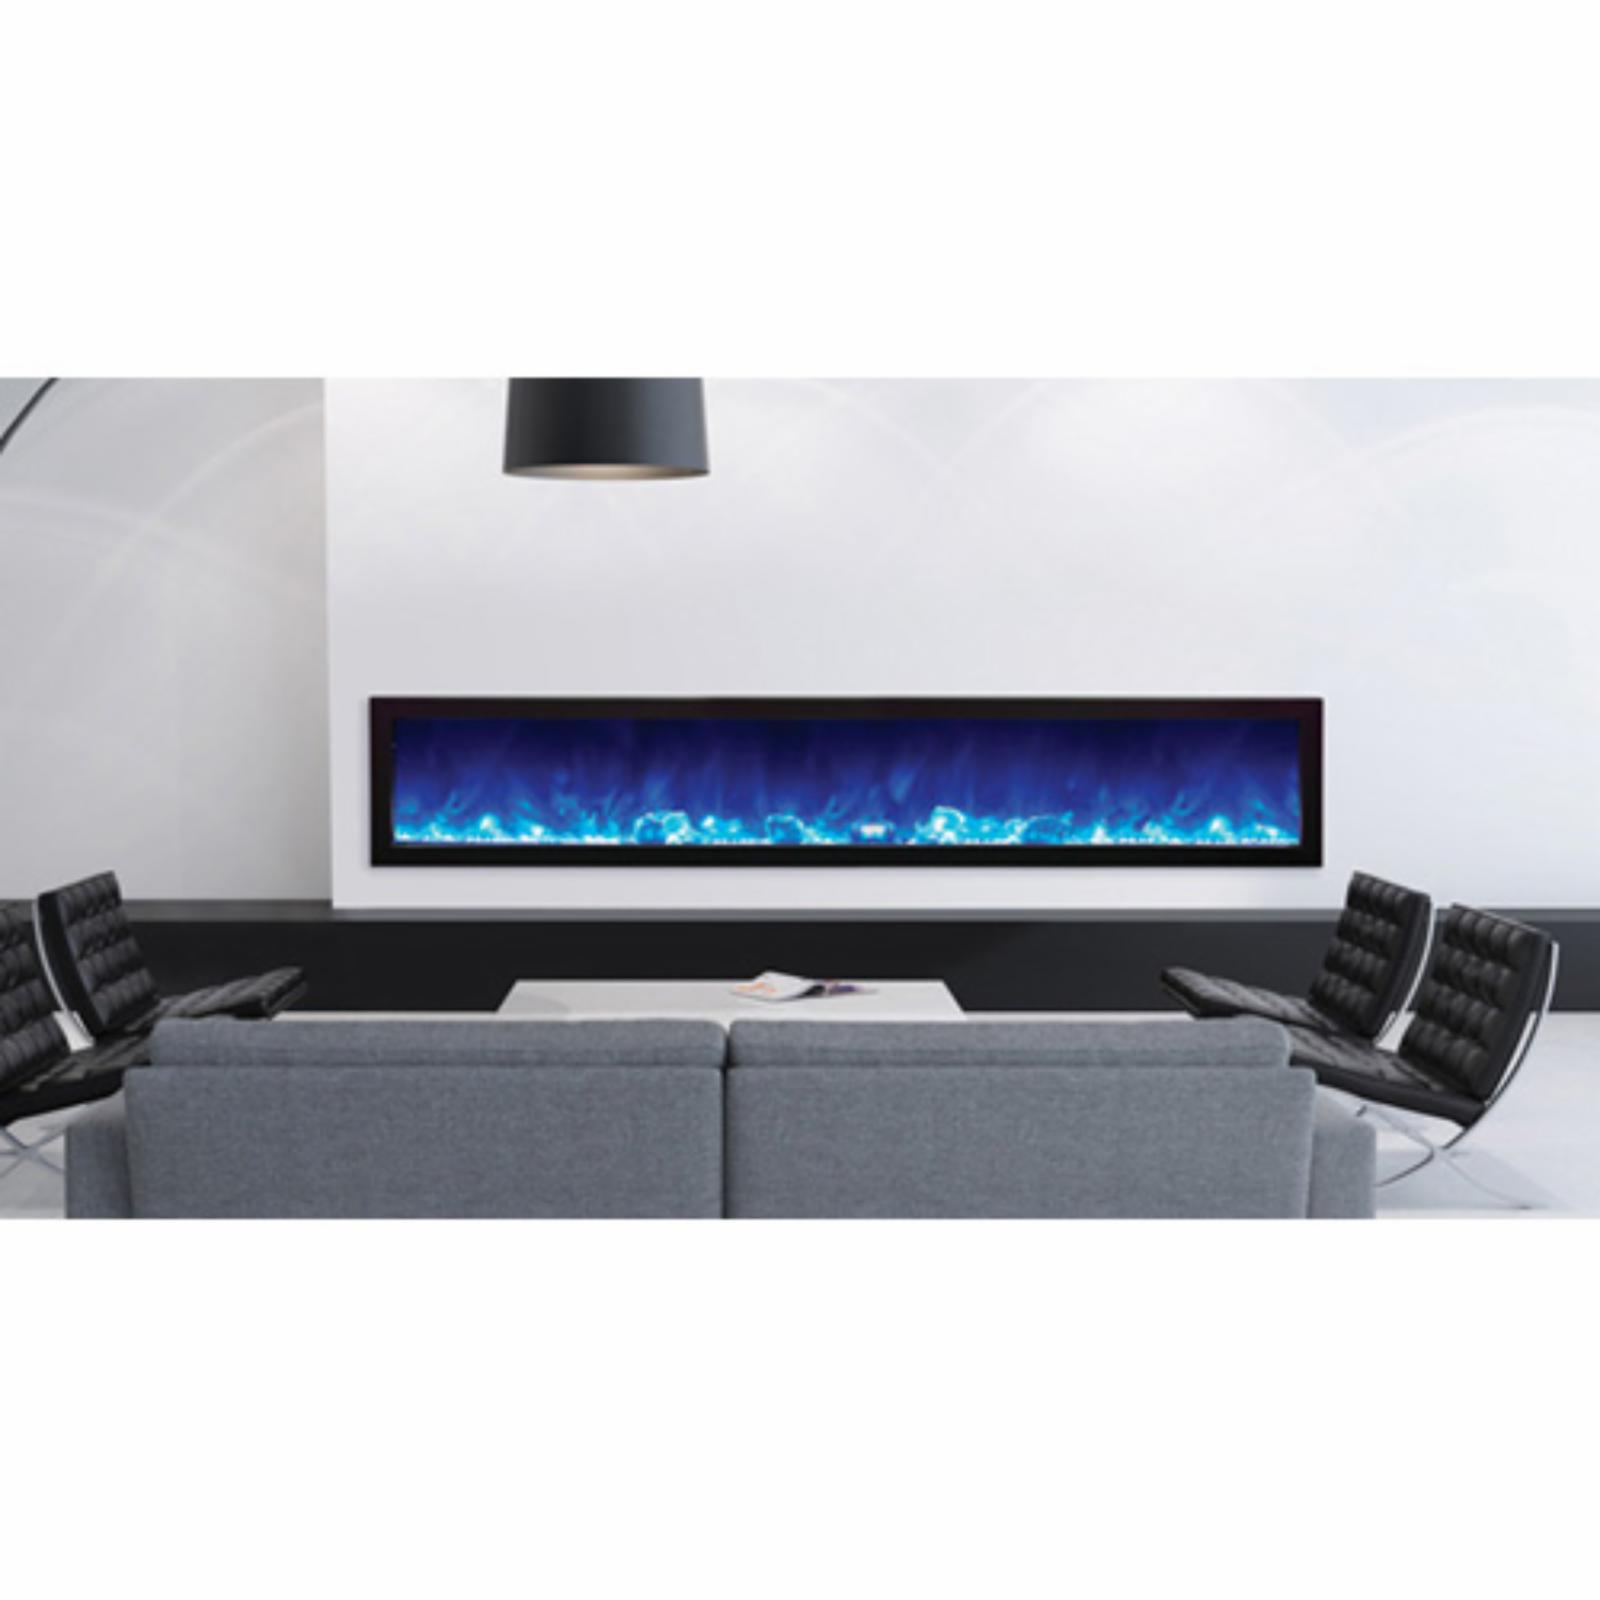 Amantii Panorama Slim Electric Wall Mount Fireplace with Black Surround - BI-40-SLIM